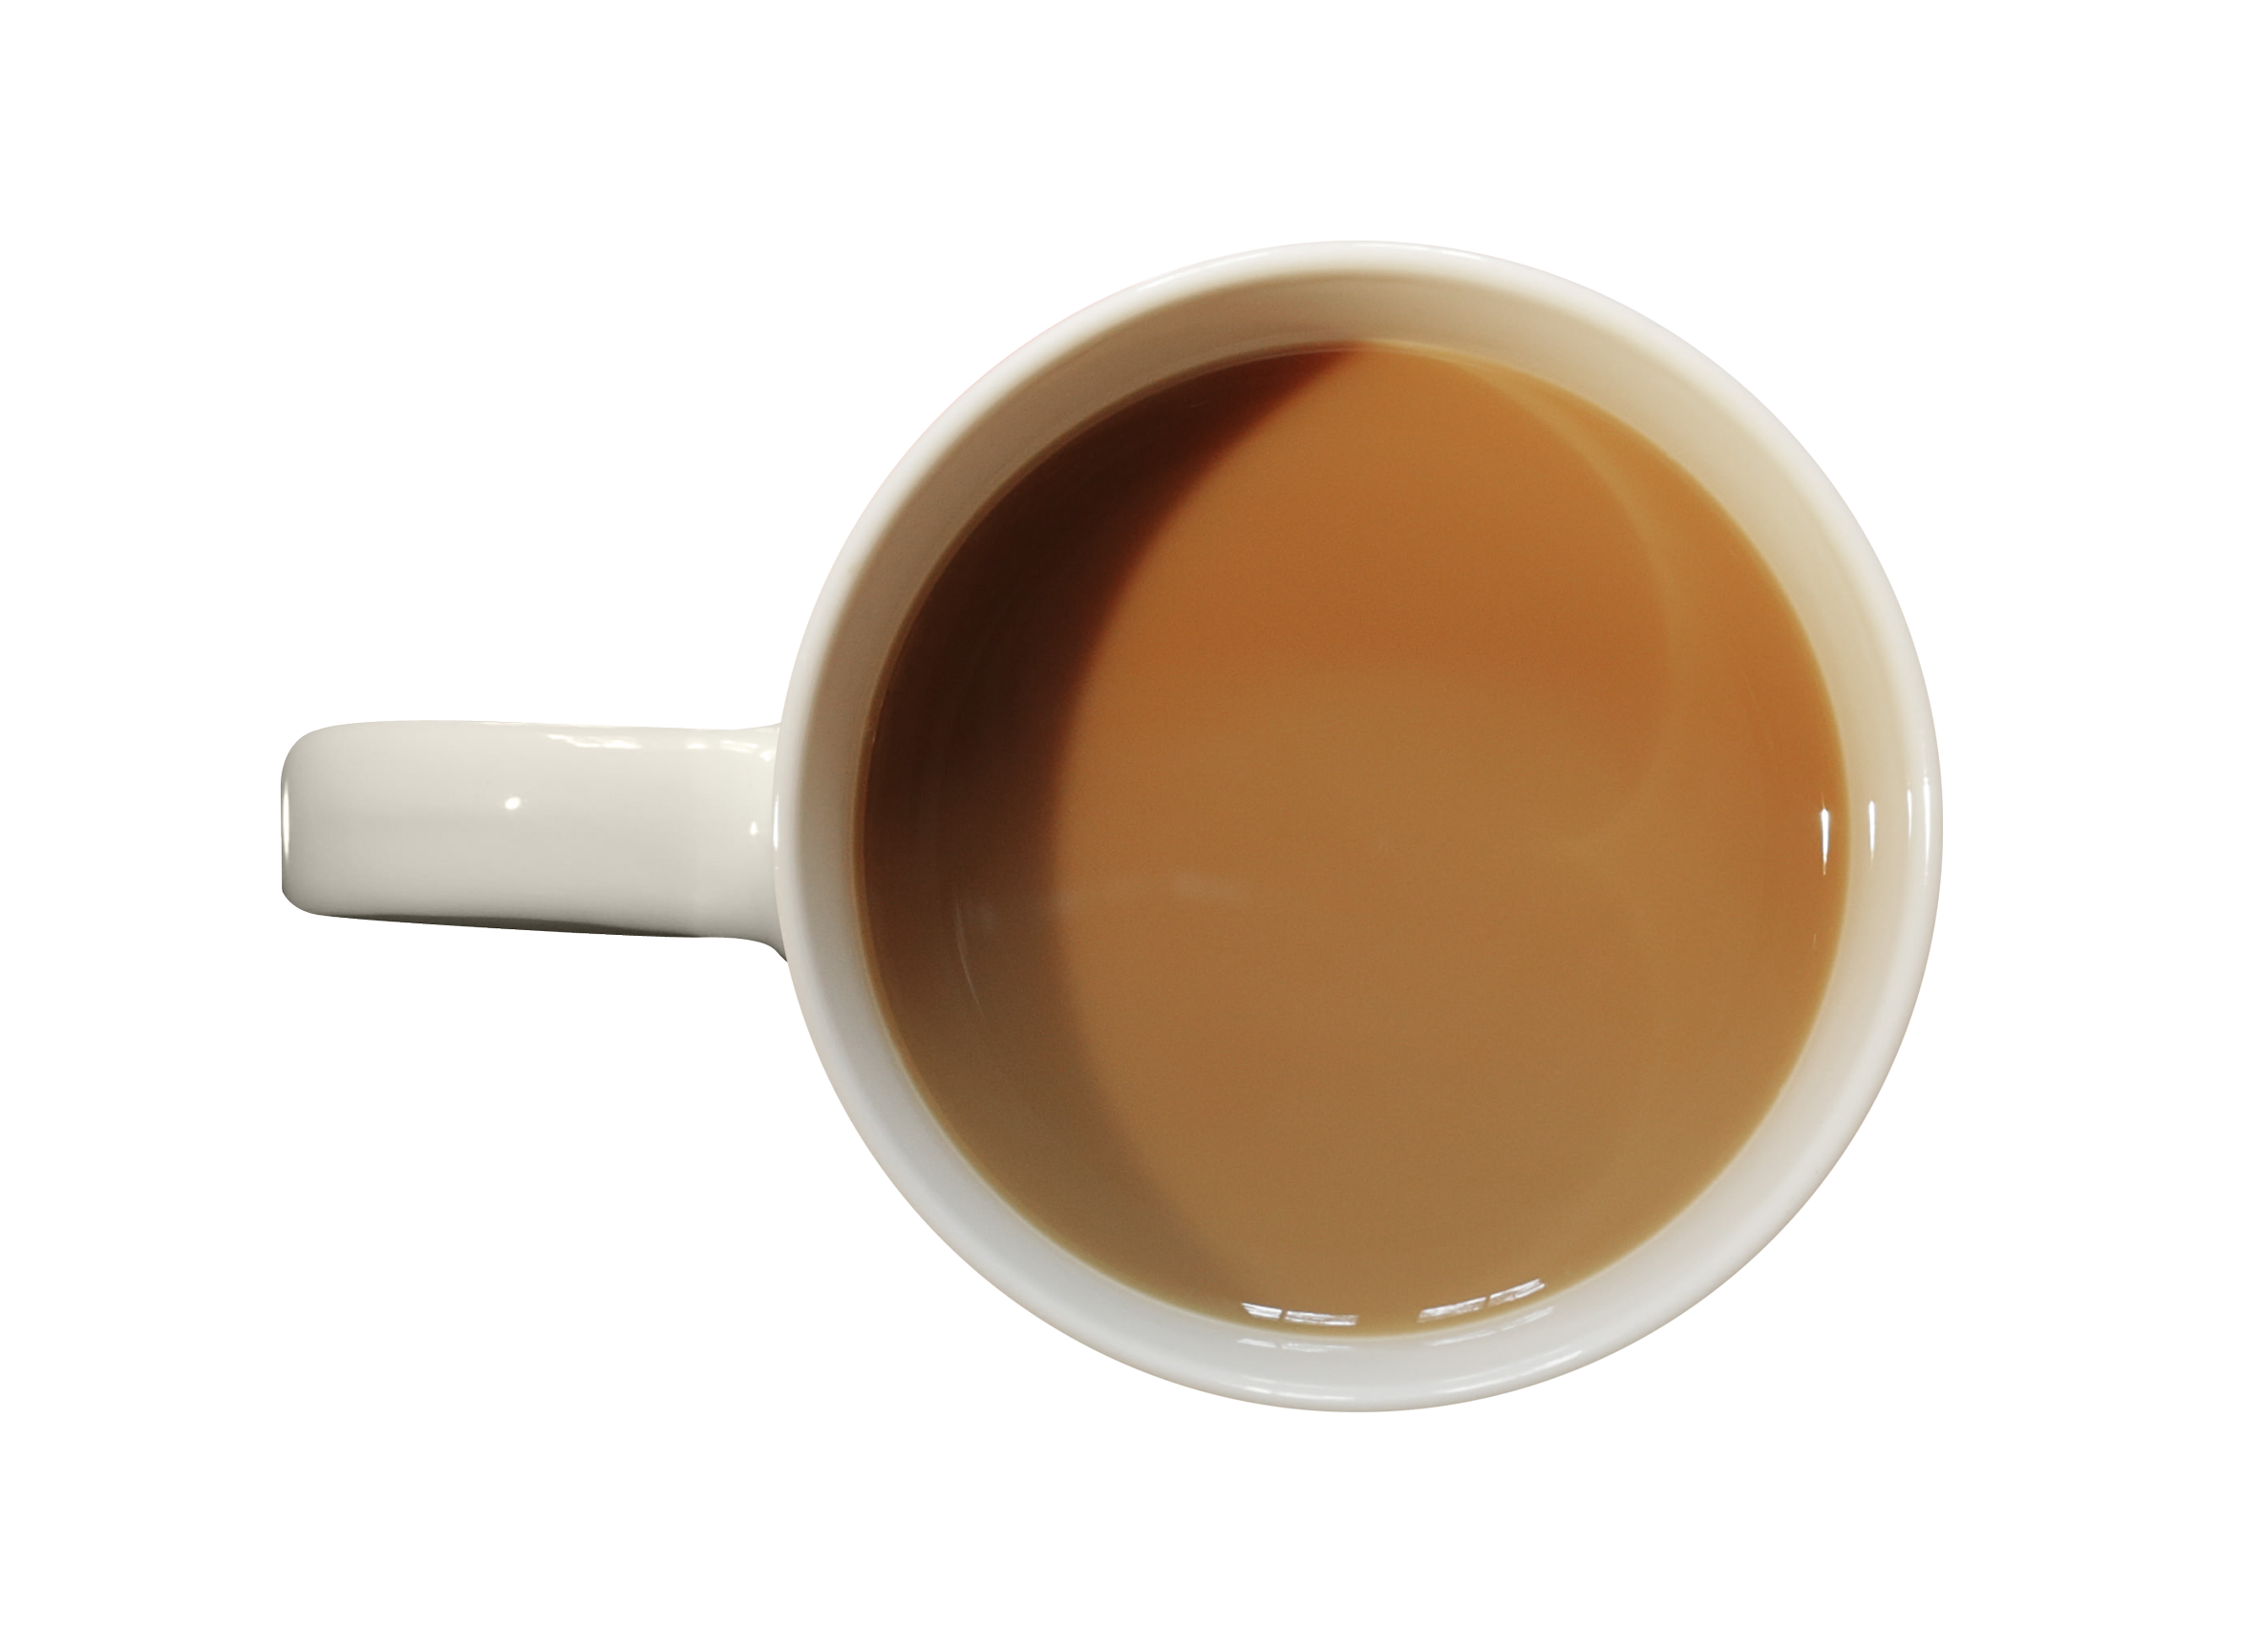 Coffee cup top view png. Mug image transparent best